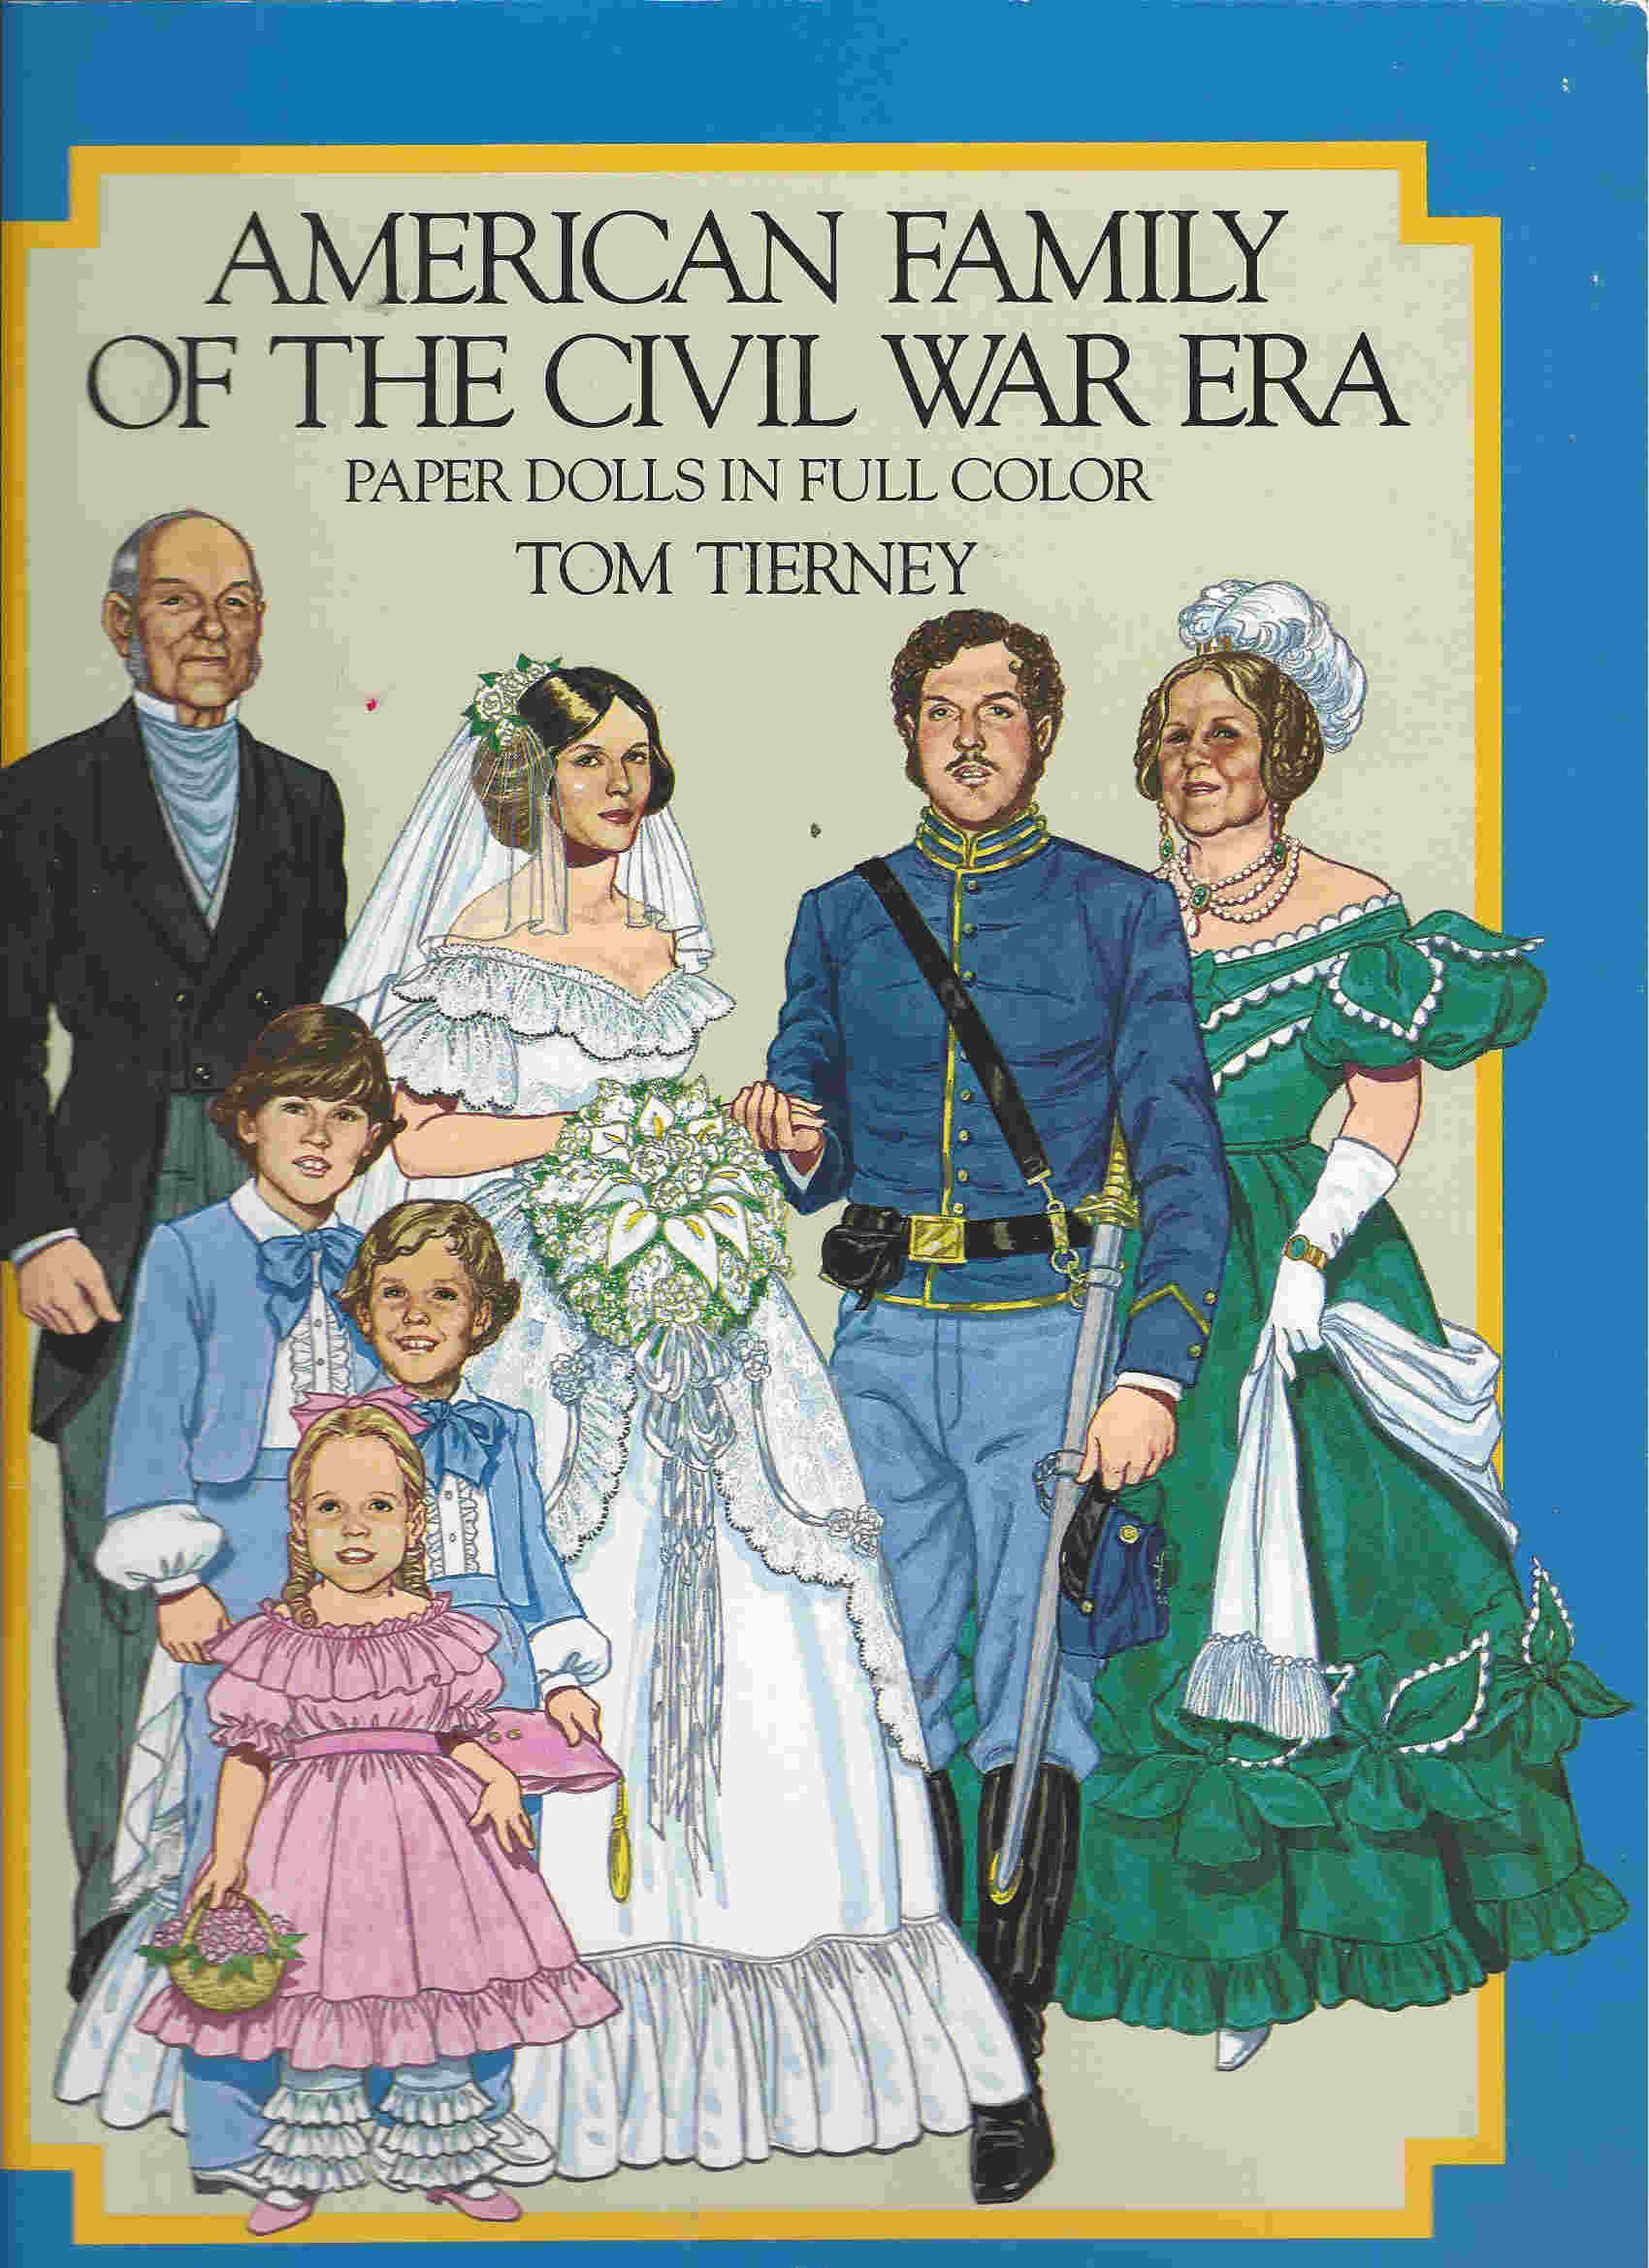 civil war tom tierney paper dolls